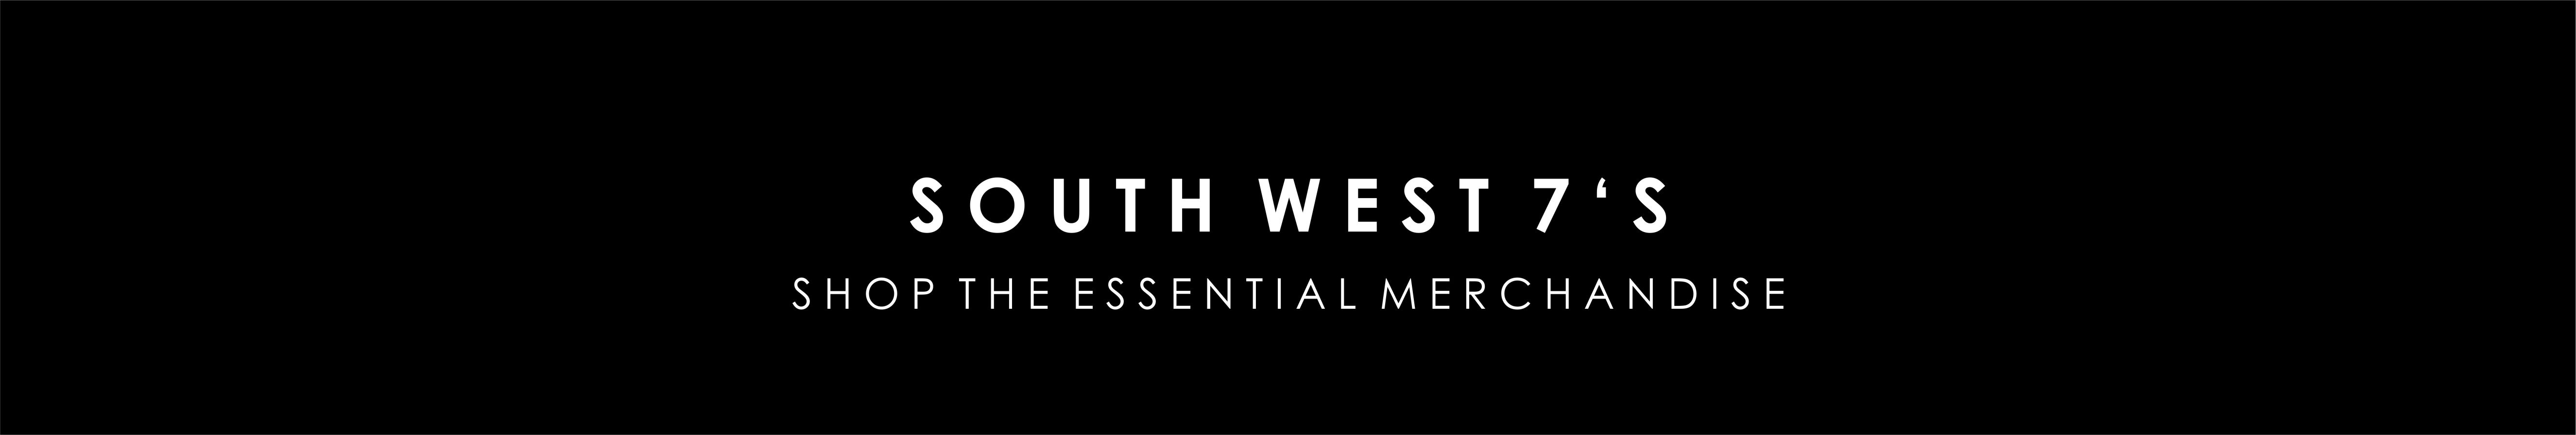 south-west-7-s-banner.jpg